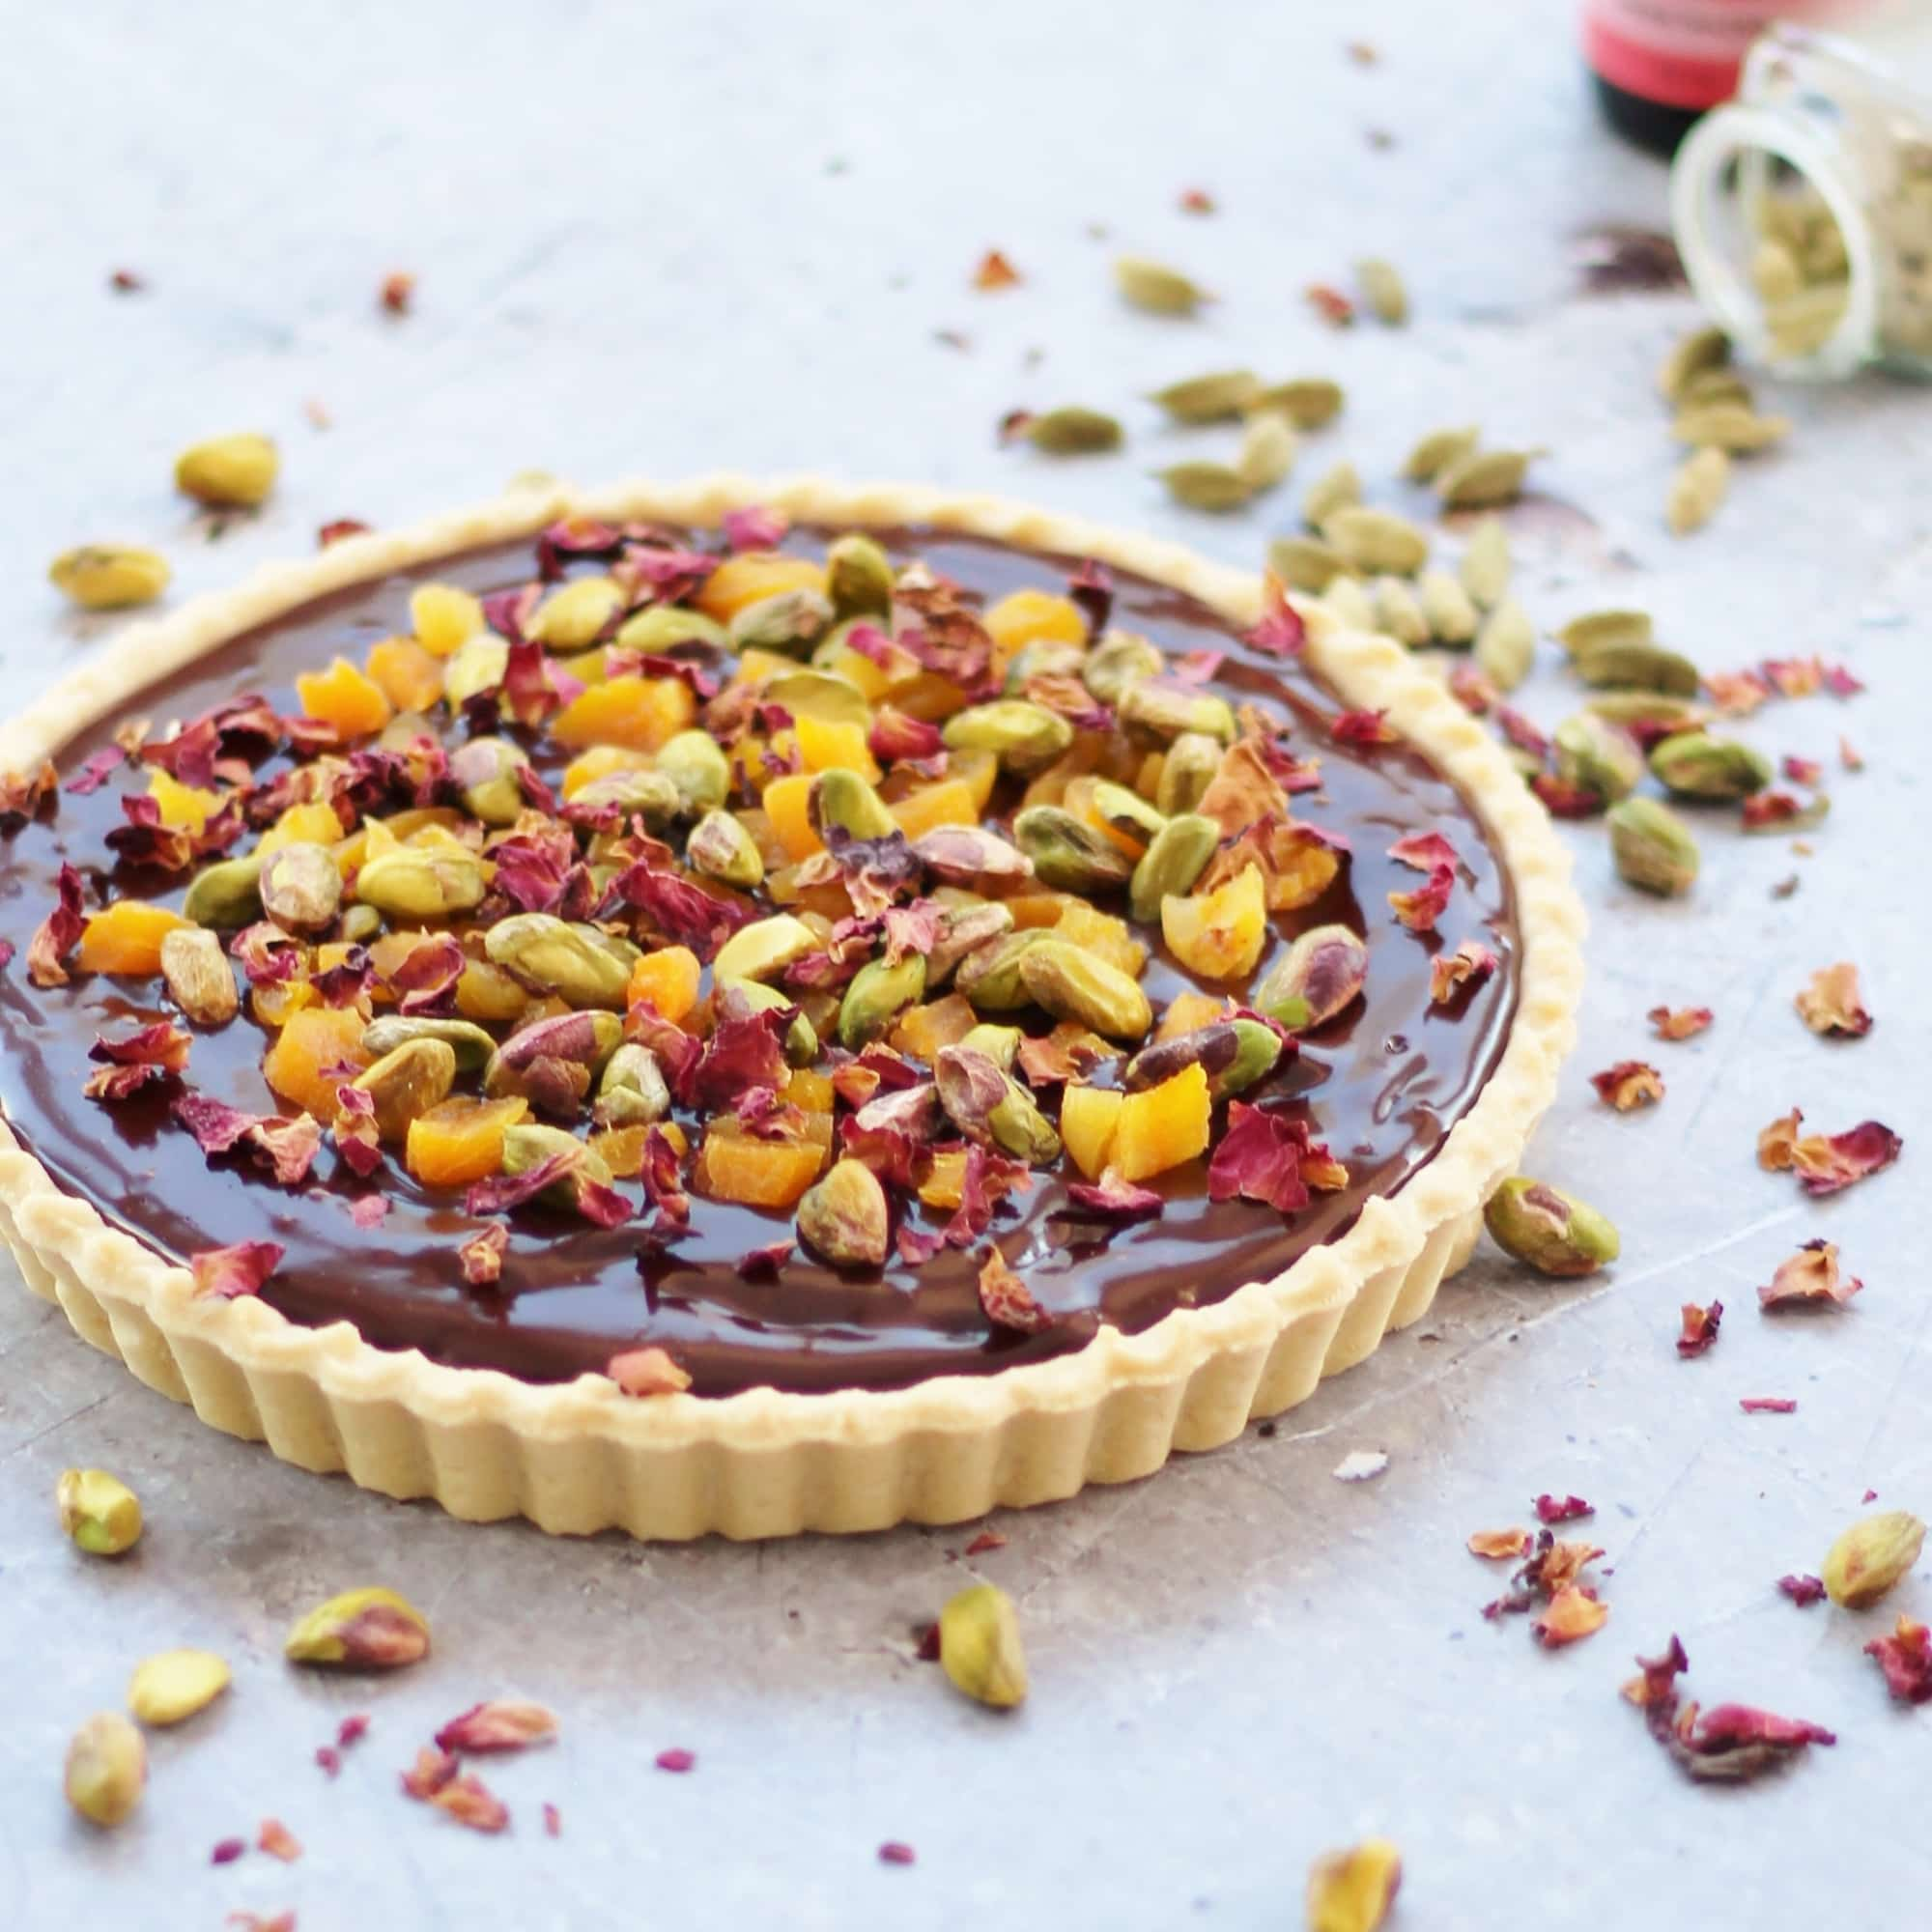 Chocolate Tart with Cardamom, Apricots and Rose Petals - Easy ...